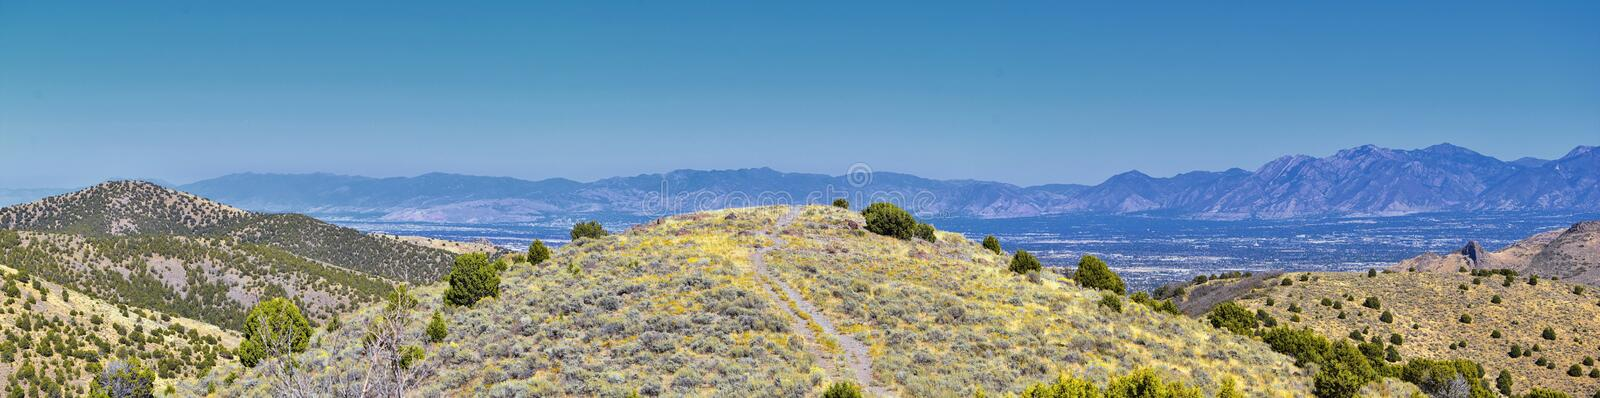 Views of Wasatch Front Rocky Mountains from the Oquirrh Mountains with fall leaves, Hiking in Yellow Fork trail Rose Canyon Utah stock images